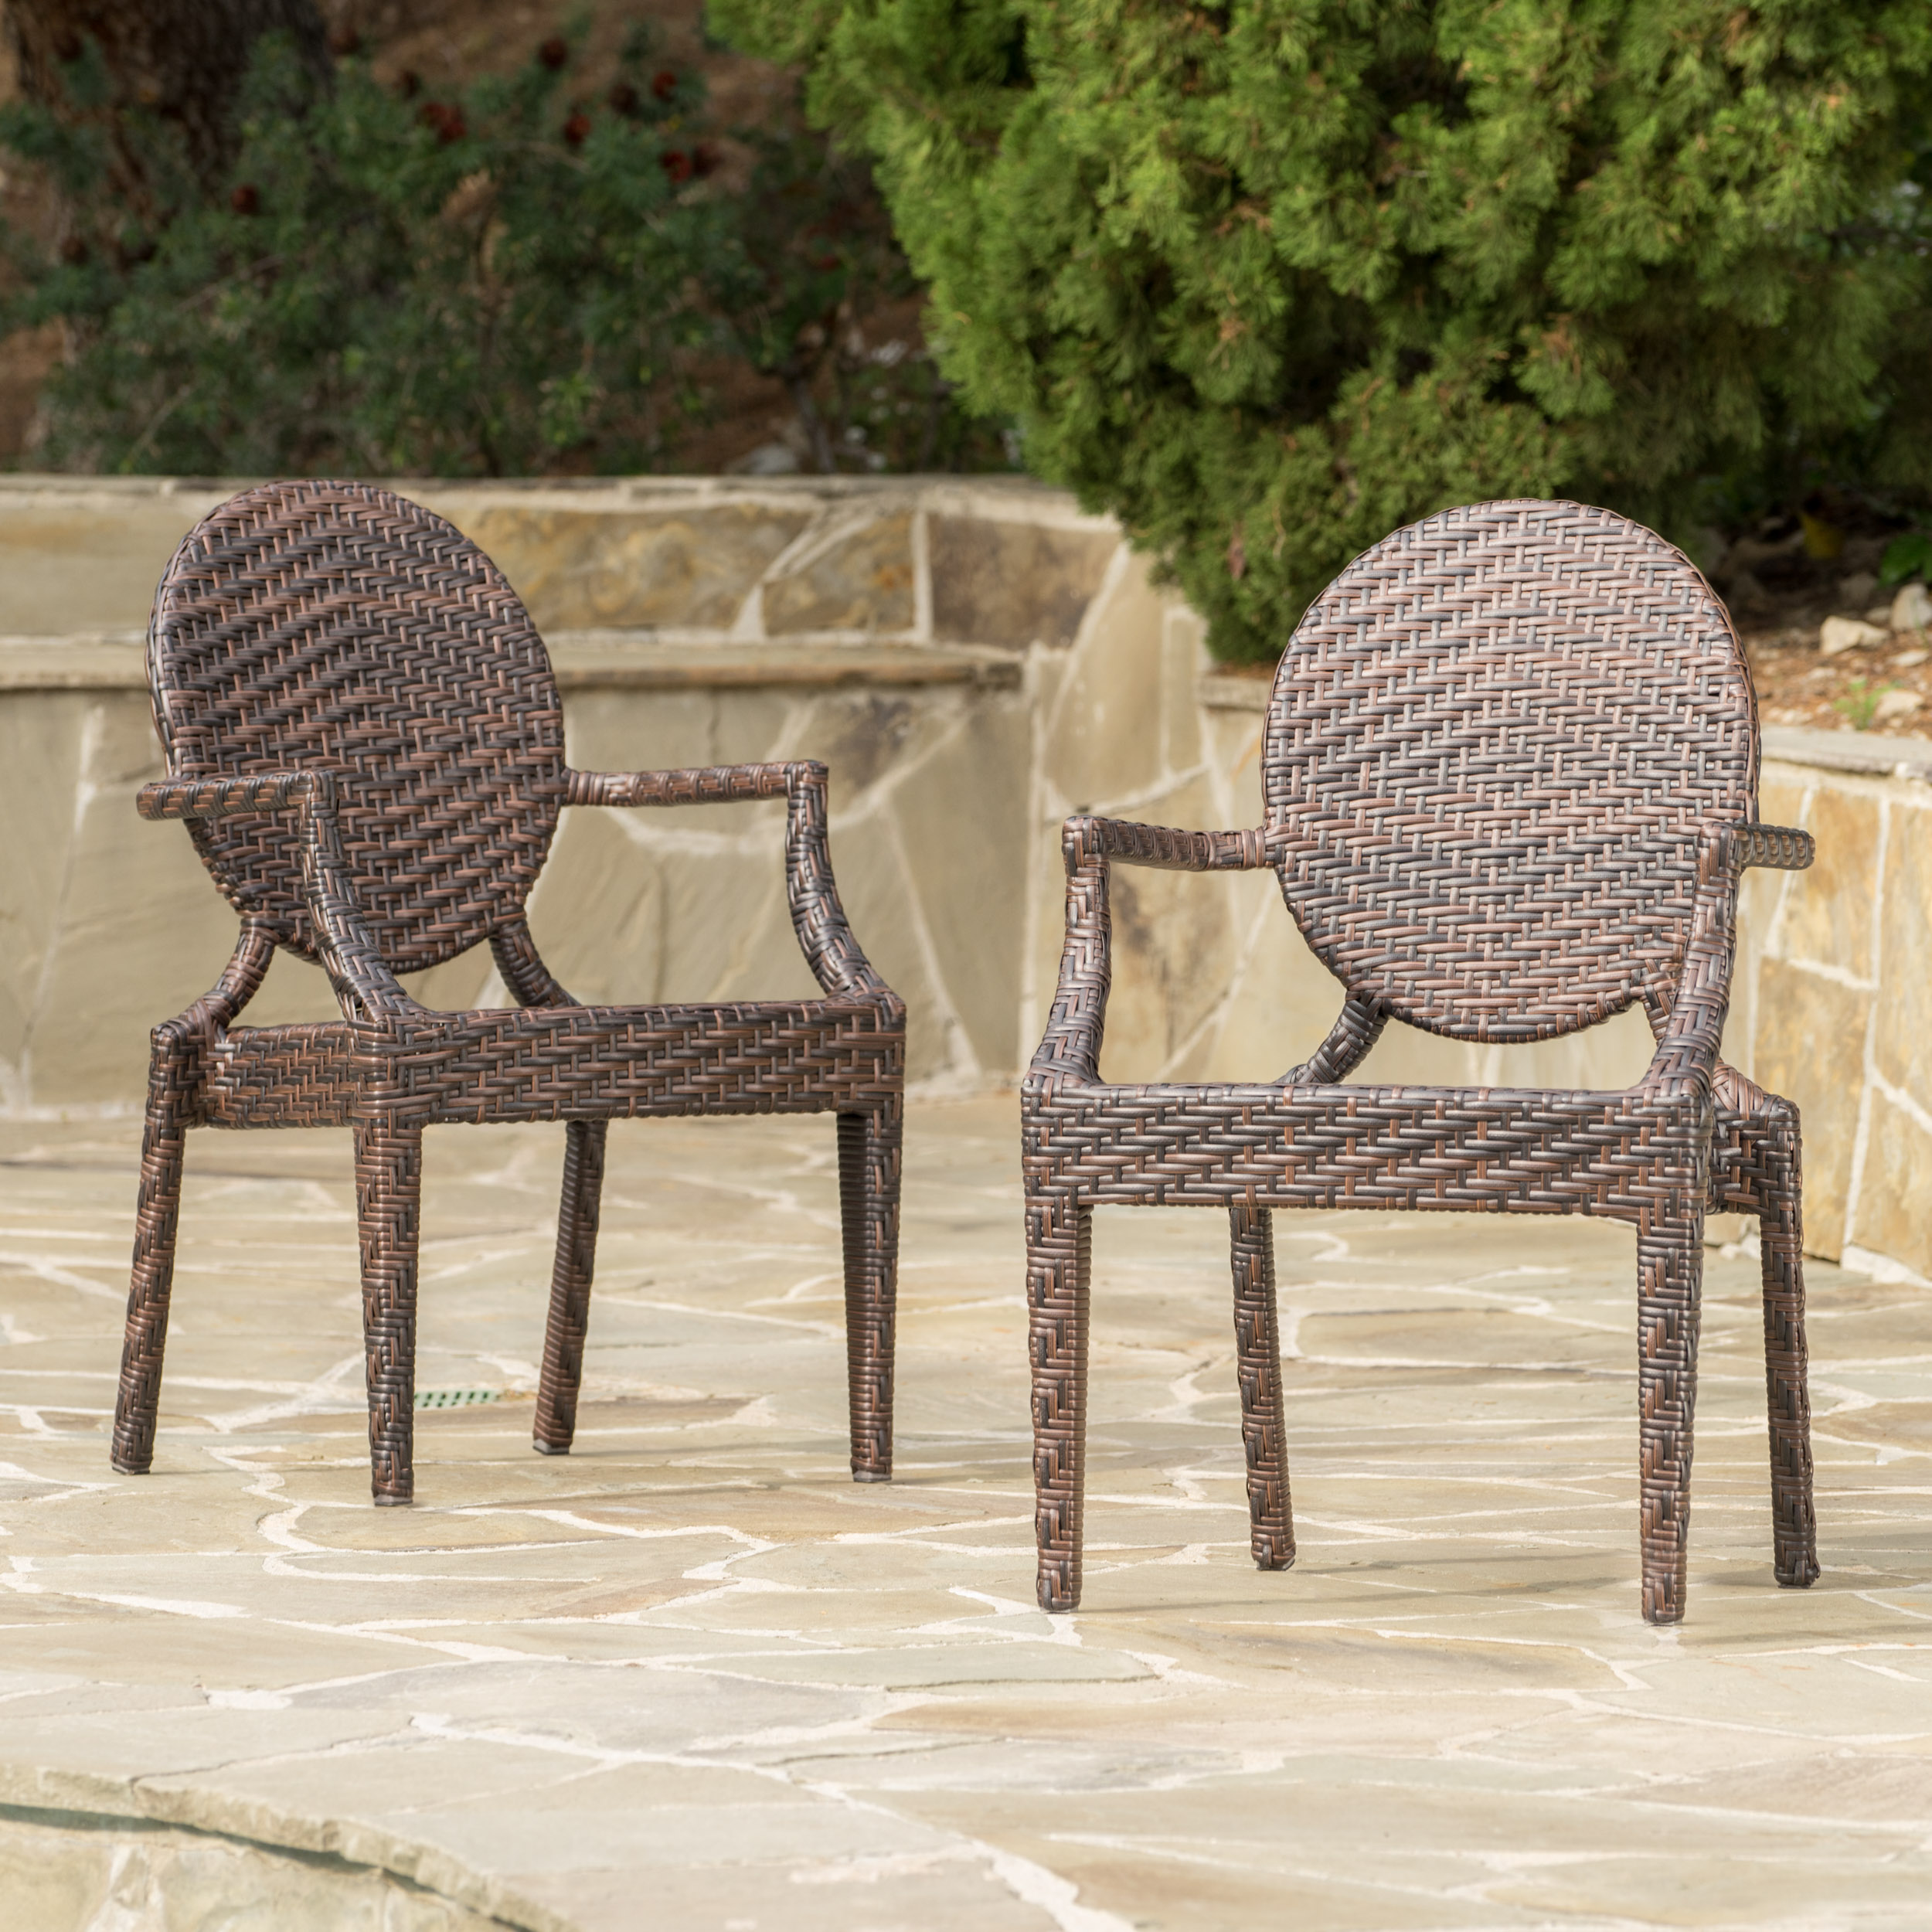 Foster Wicker Outdoor Chairs, Set of 2, Multibrown